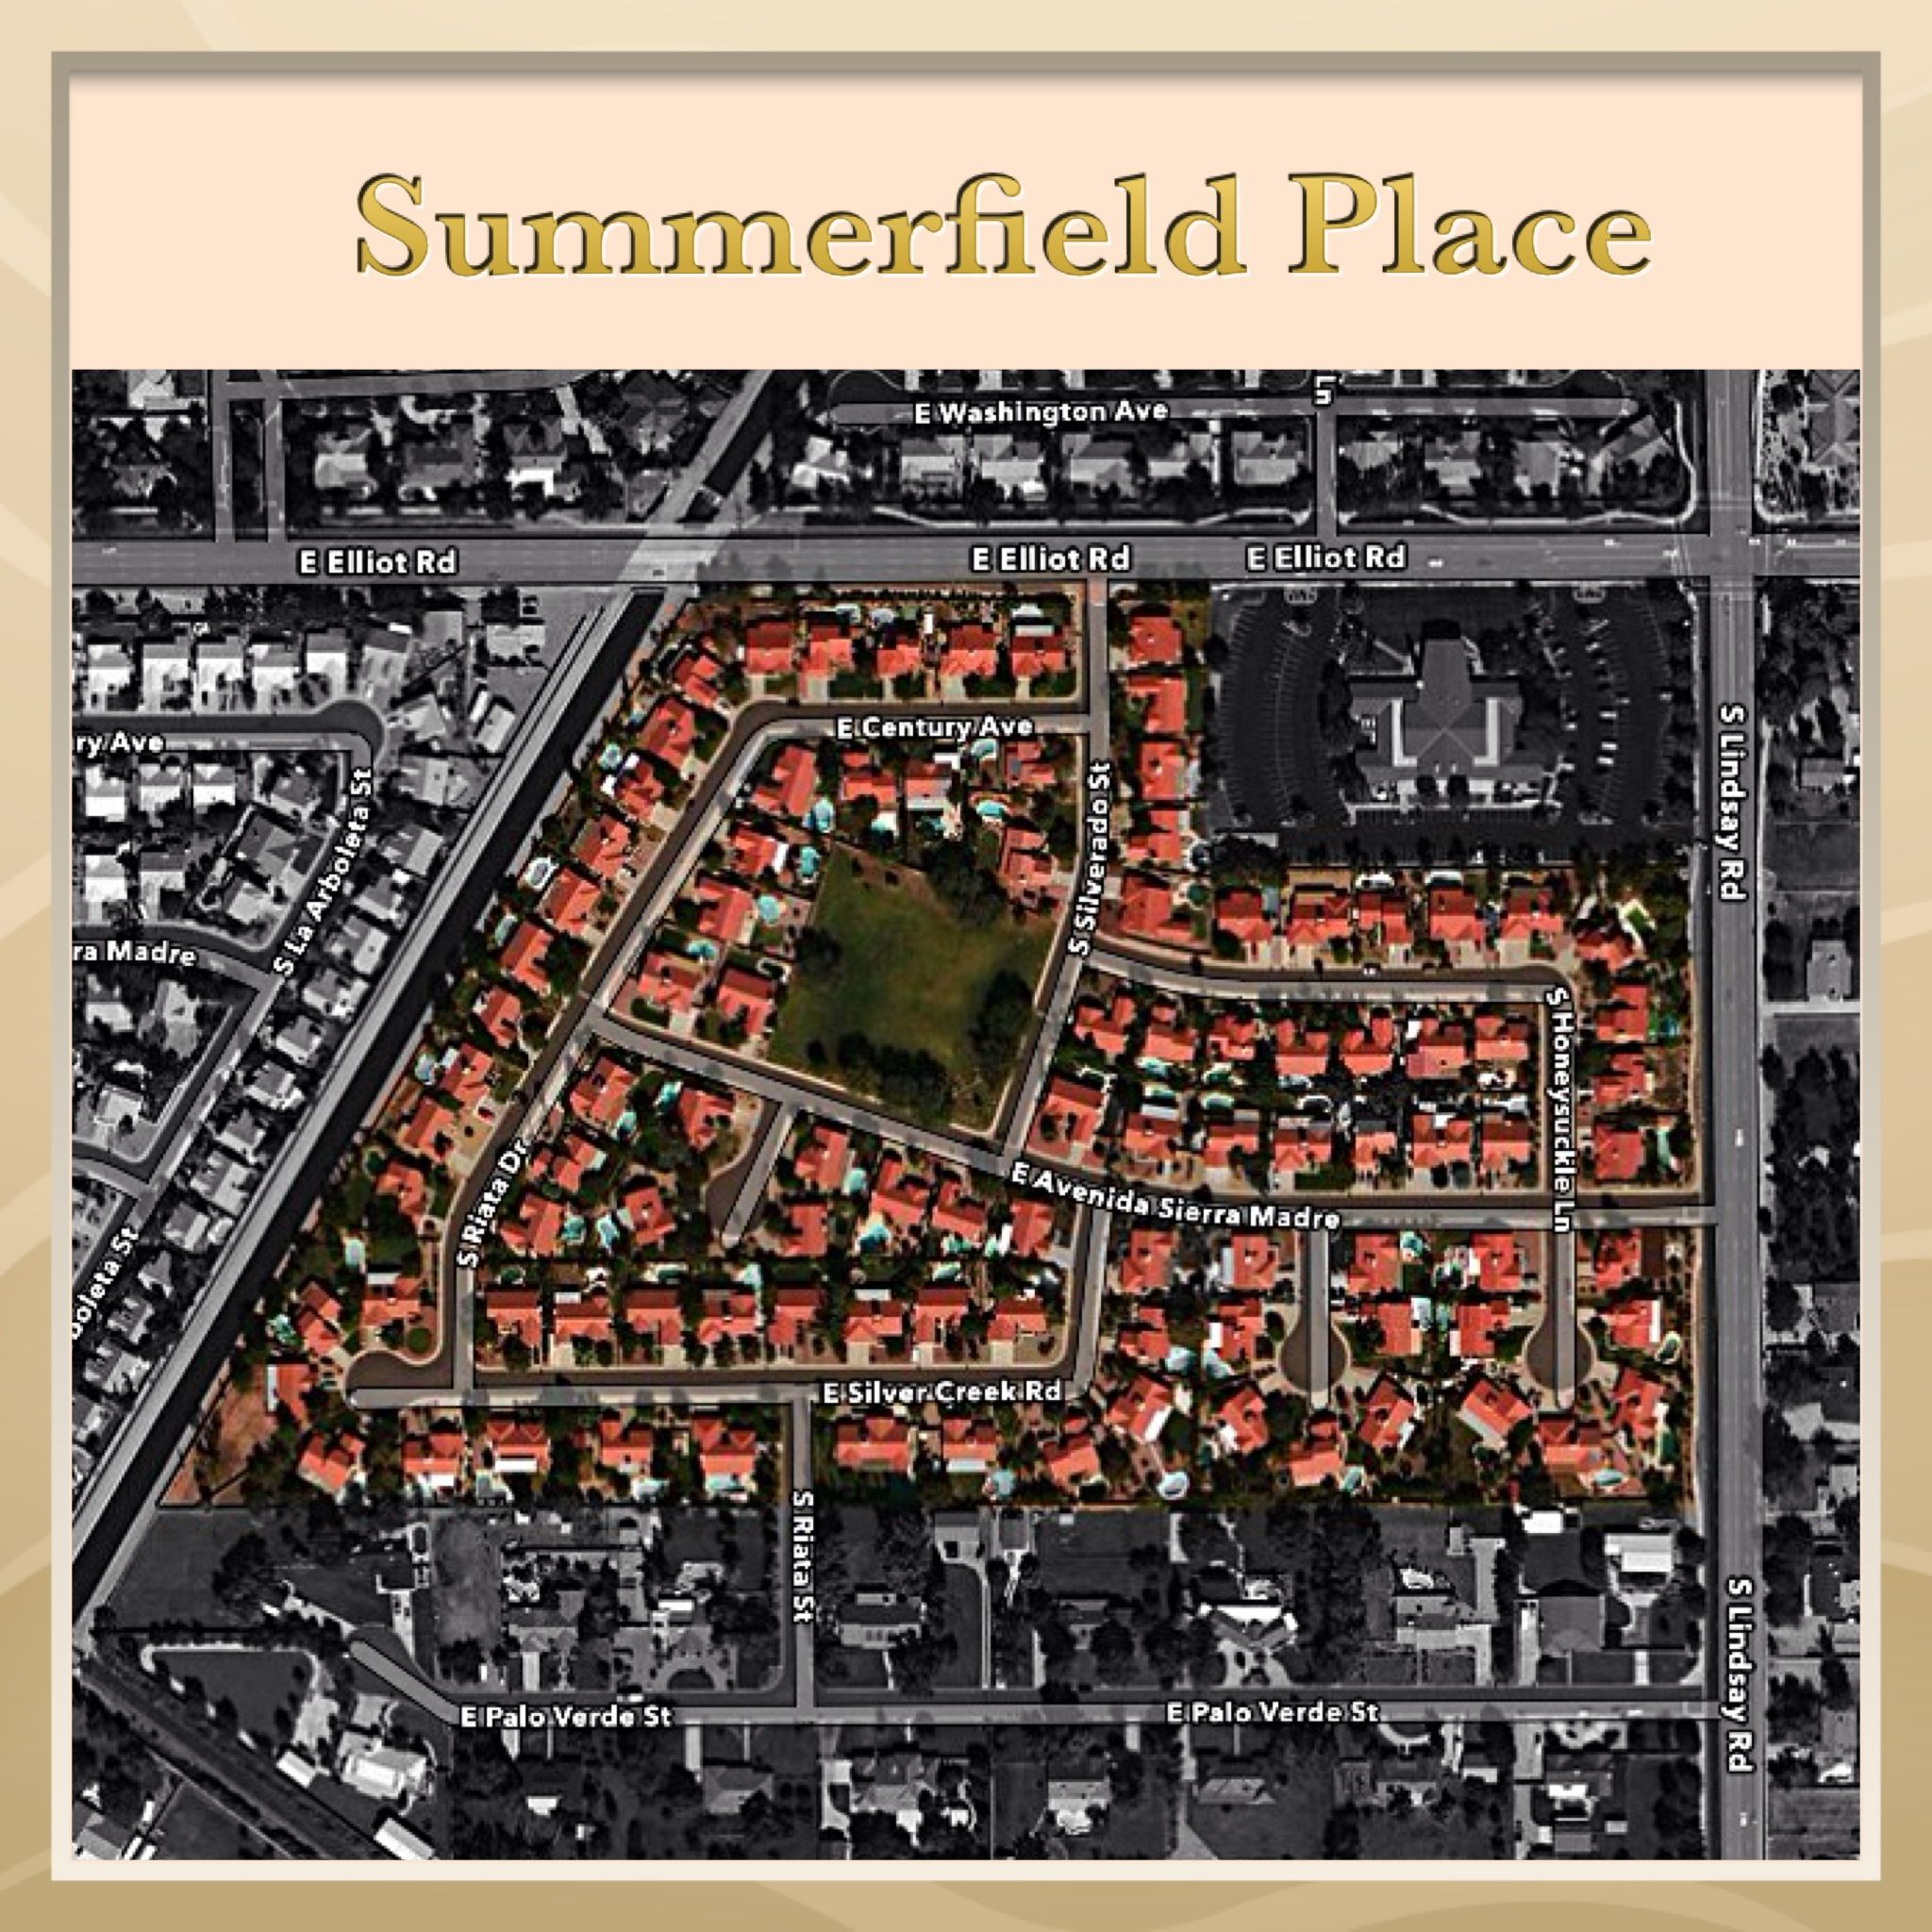 Summerfield Place Gilbert Arizona info on homes for sale, builder, HOA, schools, utilities and community amenities with pictures, map and more.... The Robert Palm Team - Realty ONE Group.  (480) 359-4669